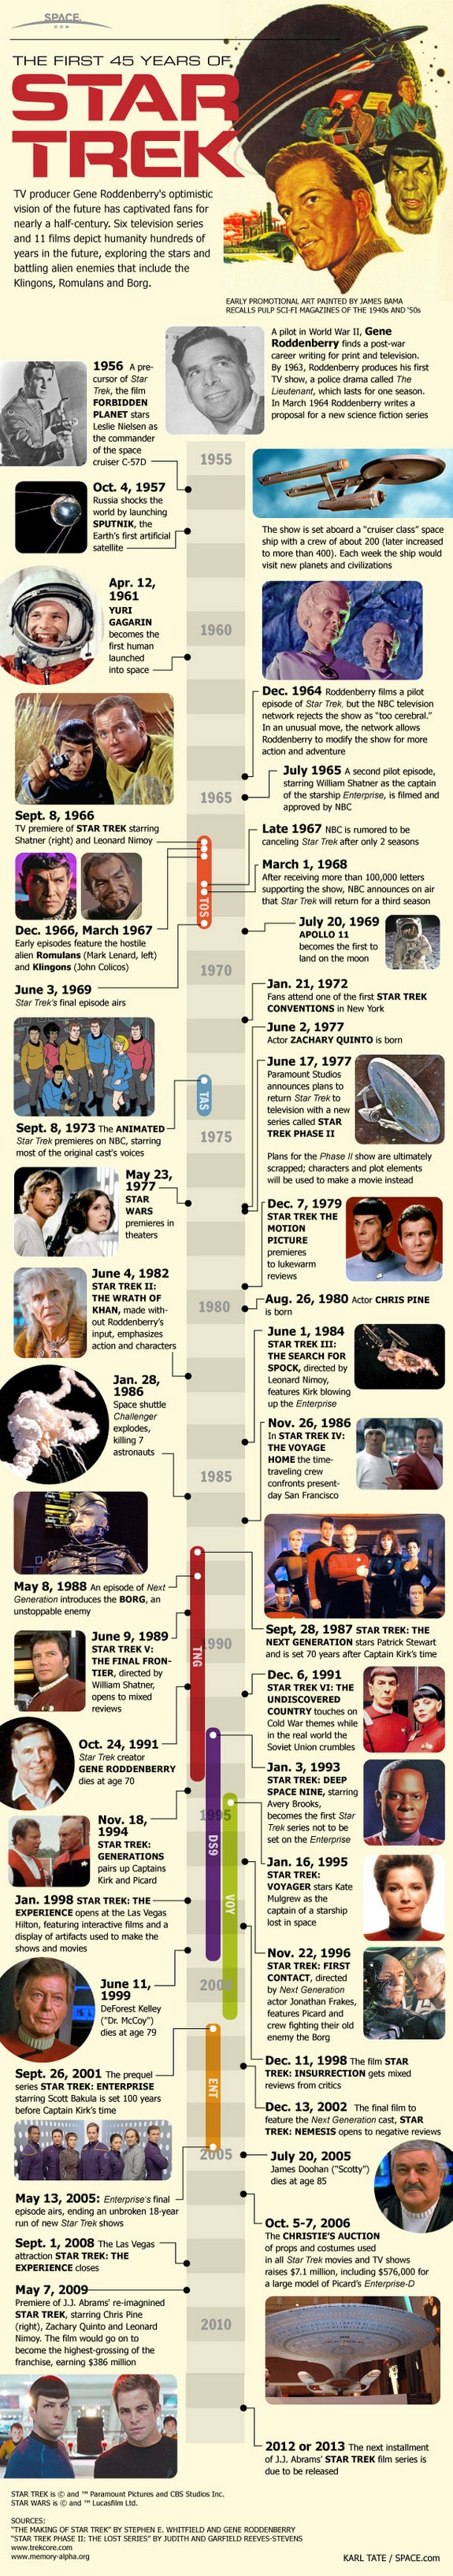 Star Trek 45 years Infographic